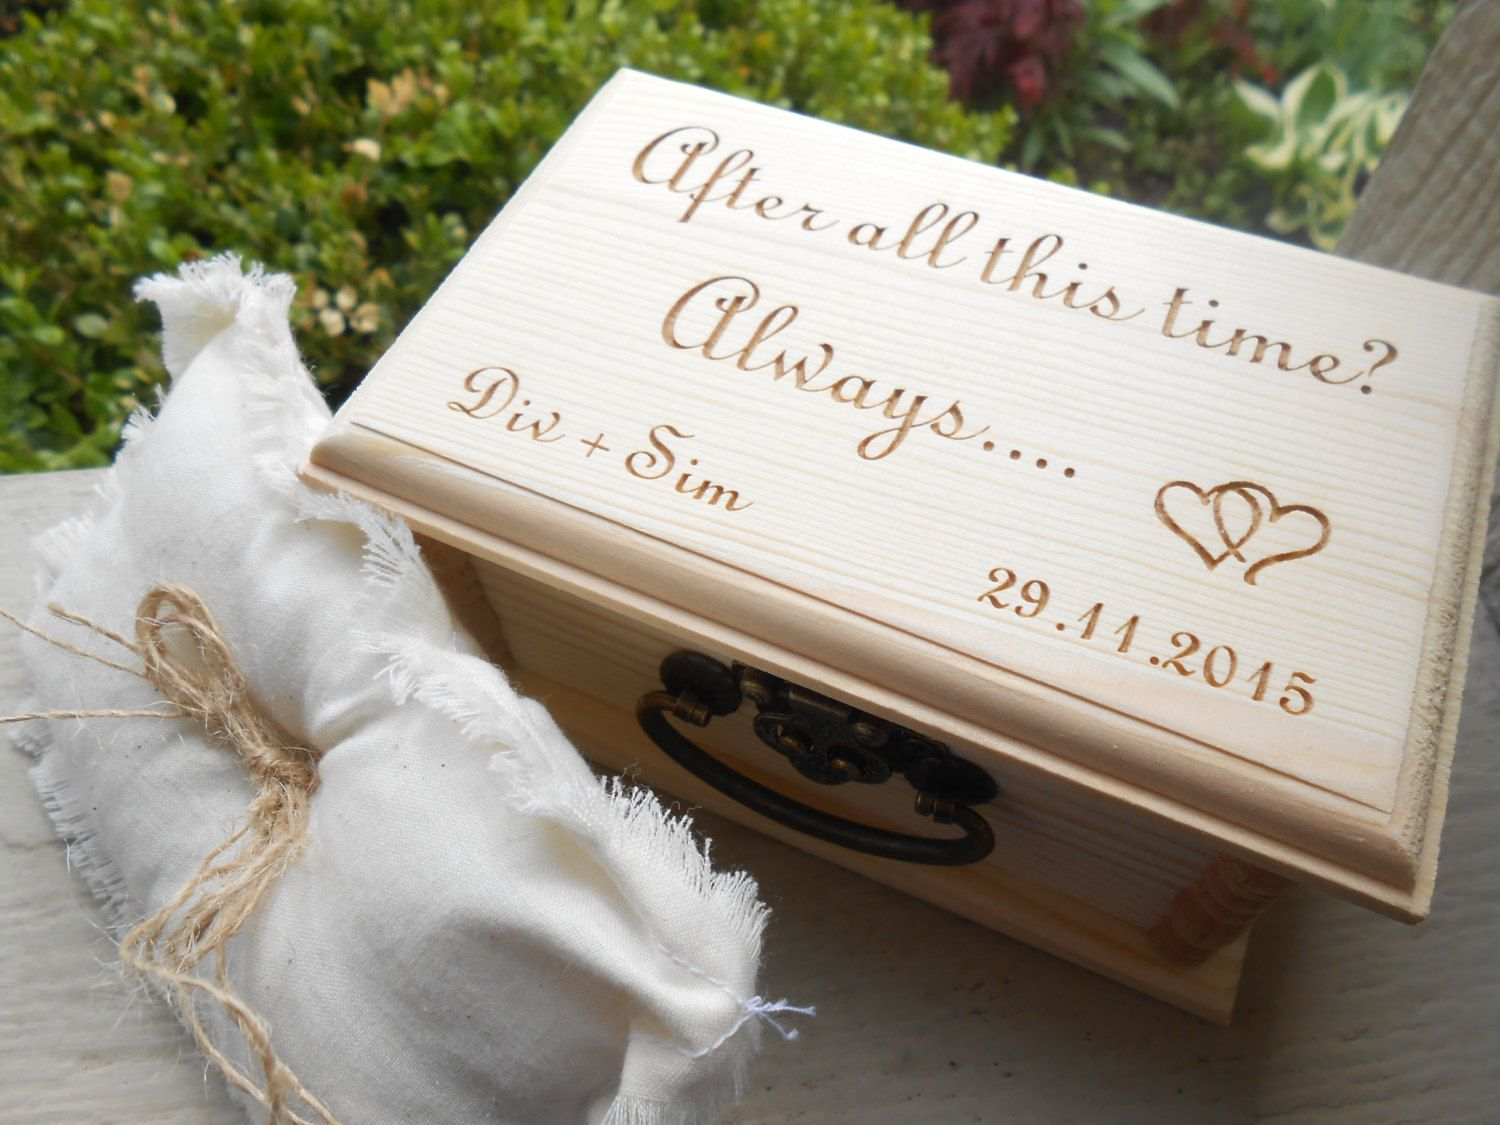 harry potter wedding bands Harry Potter Ring Box Pillow CHOOSE YOUR PILLOW Style After All This Time